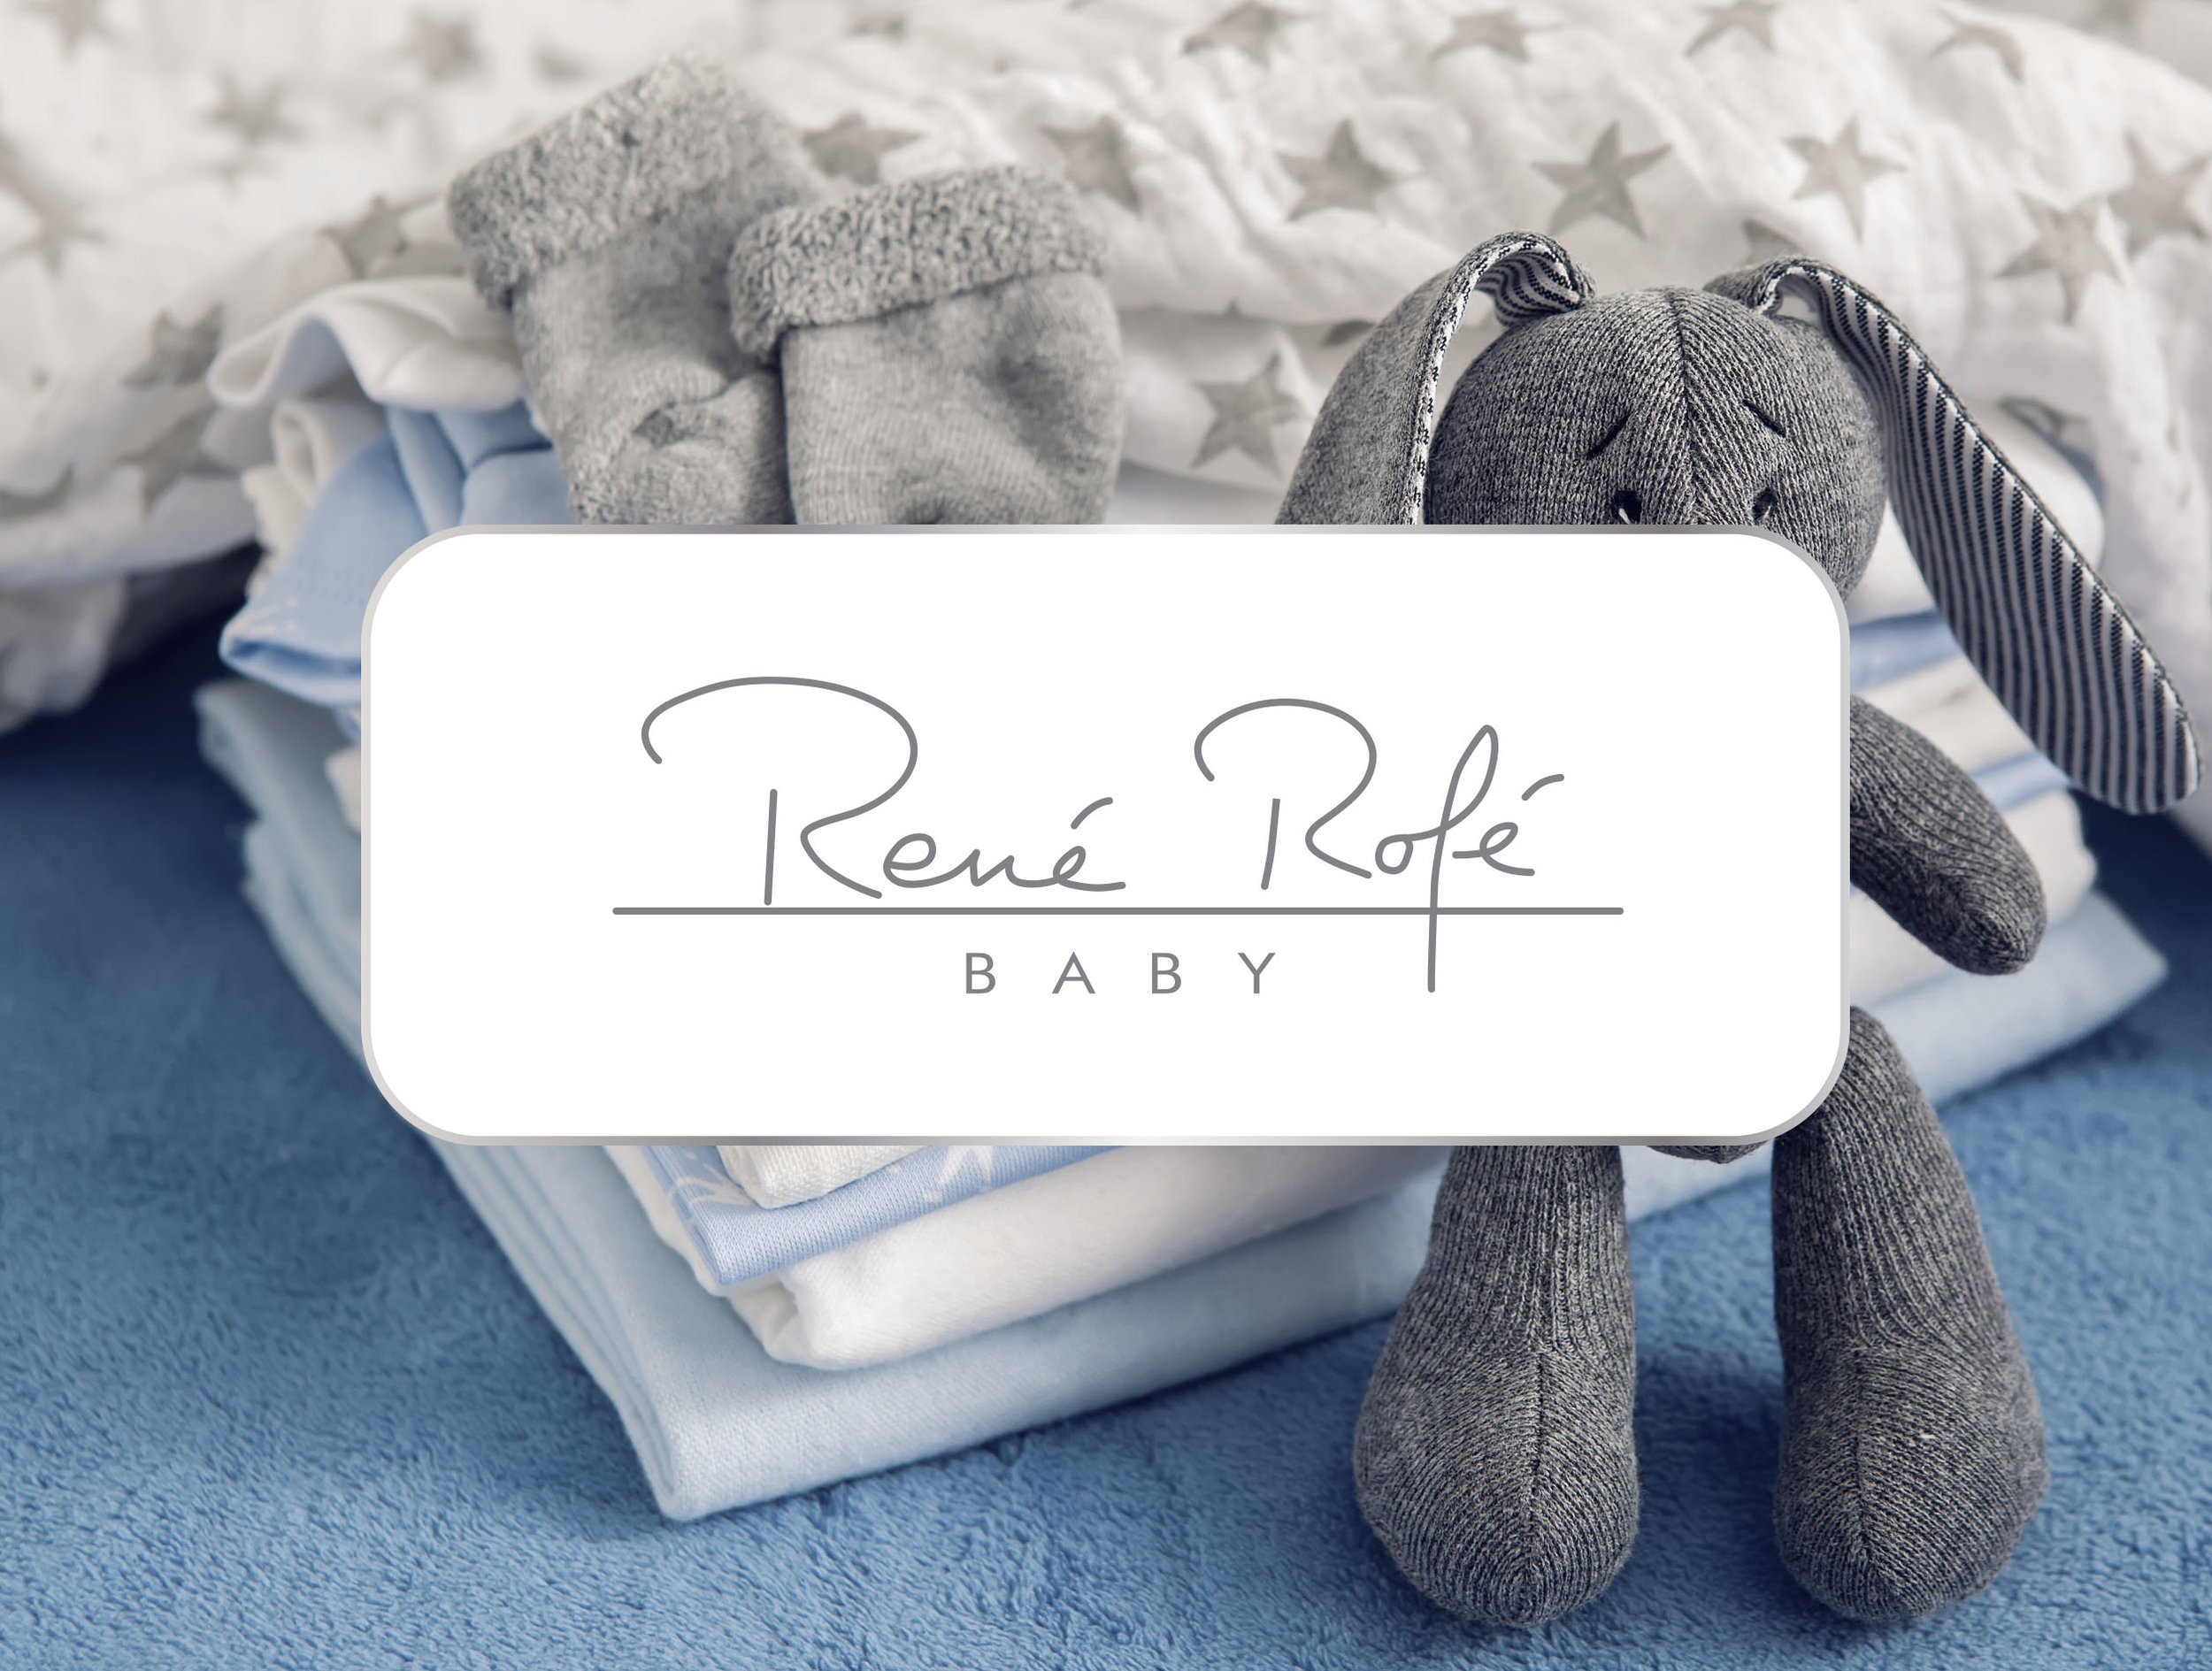 Sweet. Timeless. Classic. Tender. These words perfectly capture the essence of our René Rofé Baby brand. We've designed a comprehensive assortment of layette, gifts, and take-me-home sets that bring a level of sweet sophistication to everyday baby wear and essential newborn products.